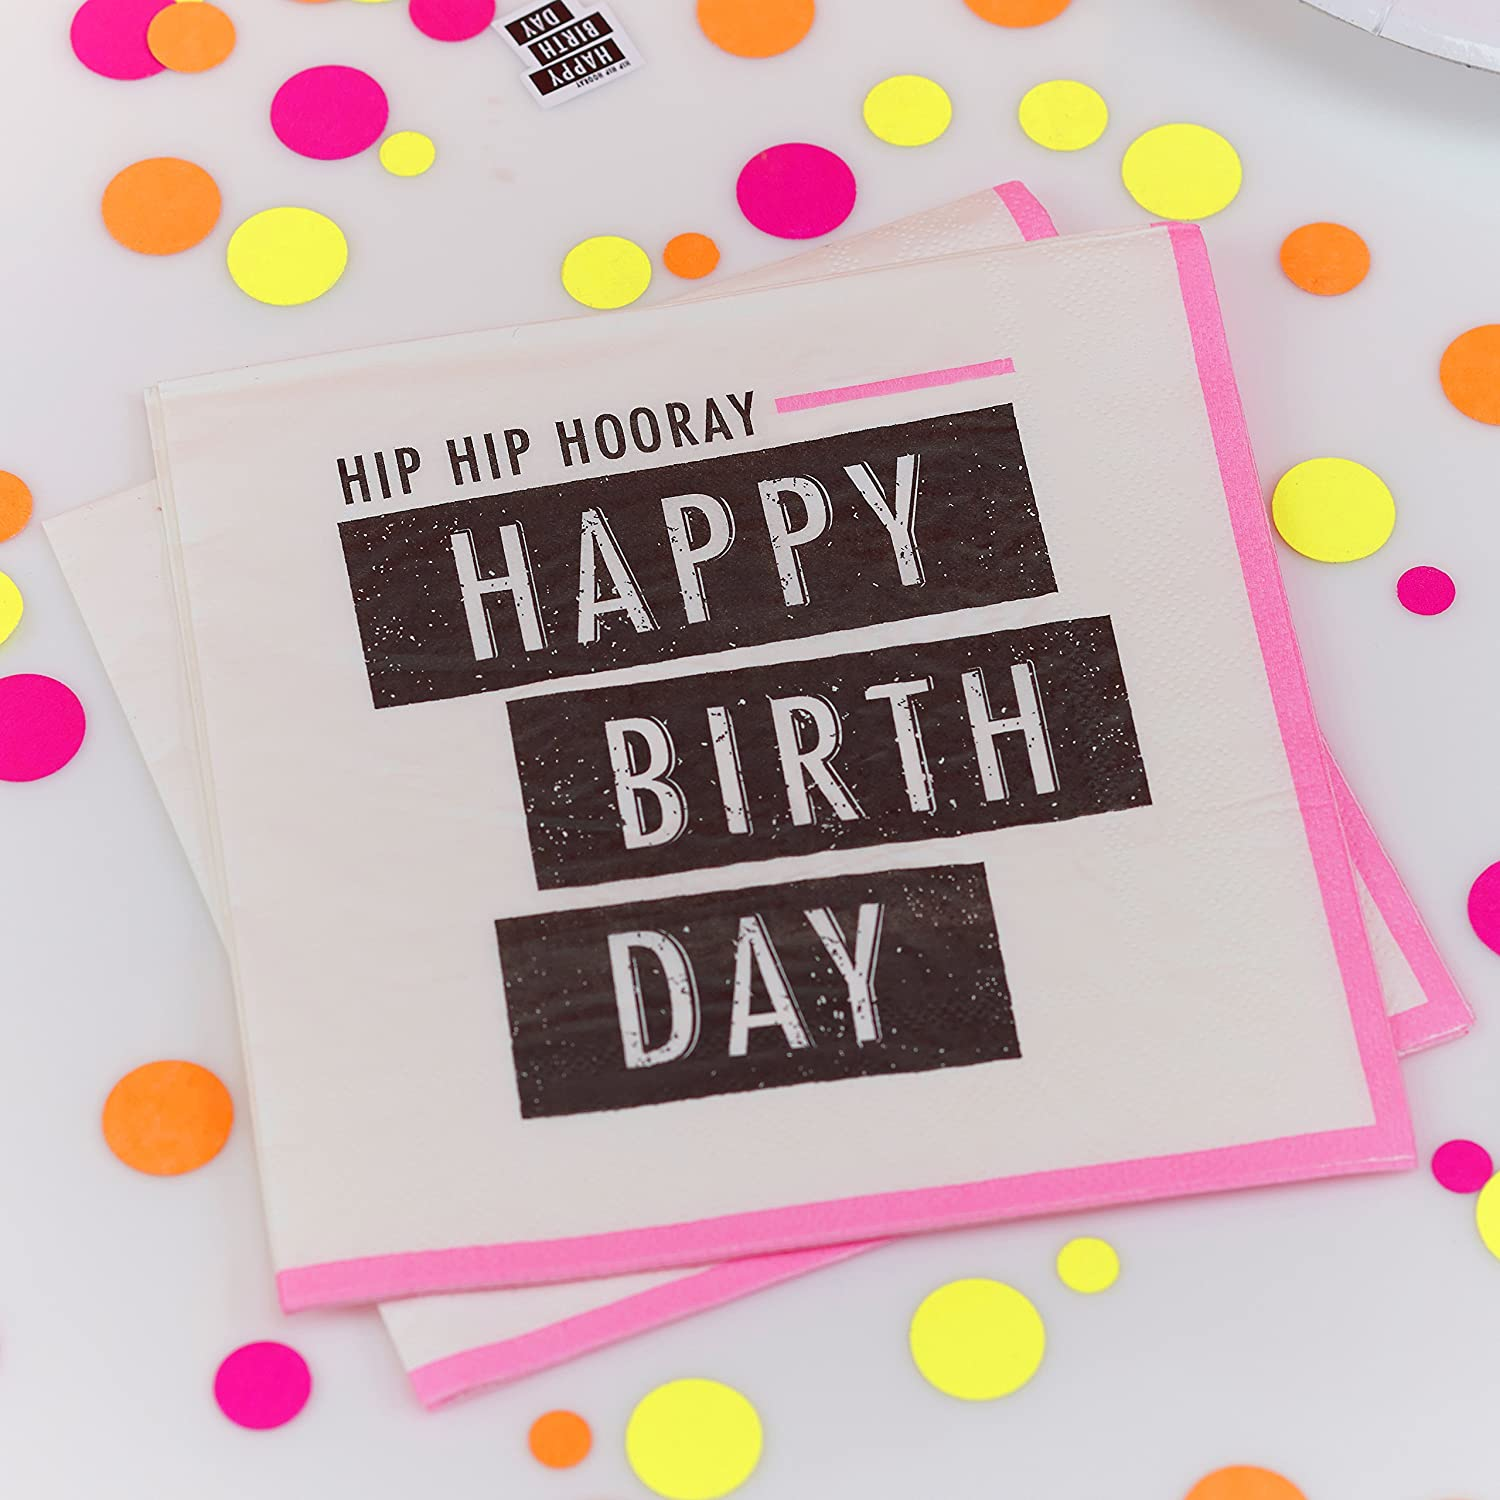 Neon Fluorescent Happy Birthday Paper Party Napkins Pink 20 paper napkins per pack! bold and bright neon print napkins saying \u0027Hip Hip Hooray Happy ...  sc 1 st  Birthday Party Themes & Neon Birthday Party Collection by Ginger Ray | Birthday Wikii